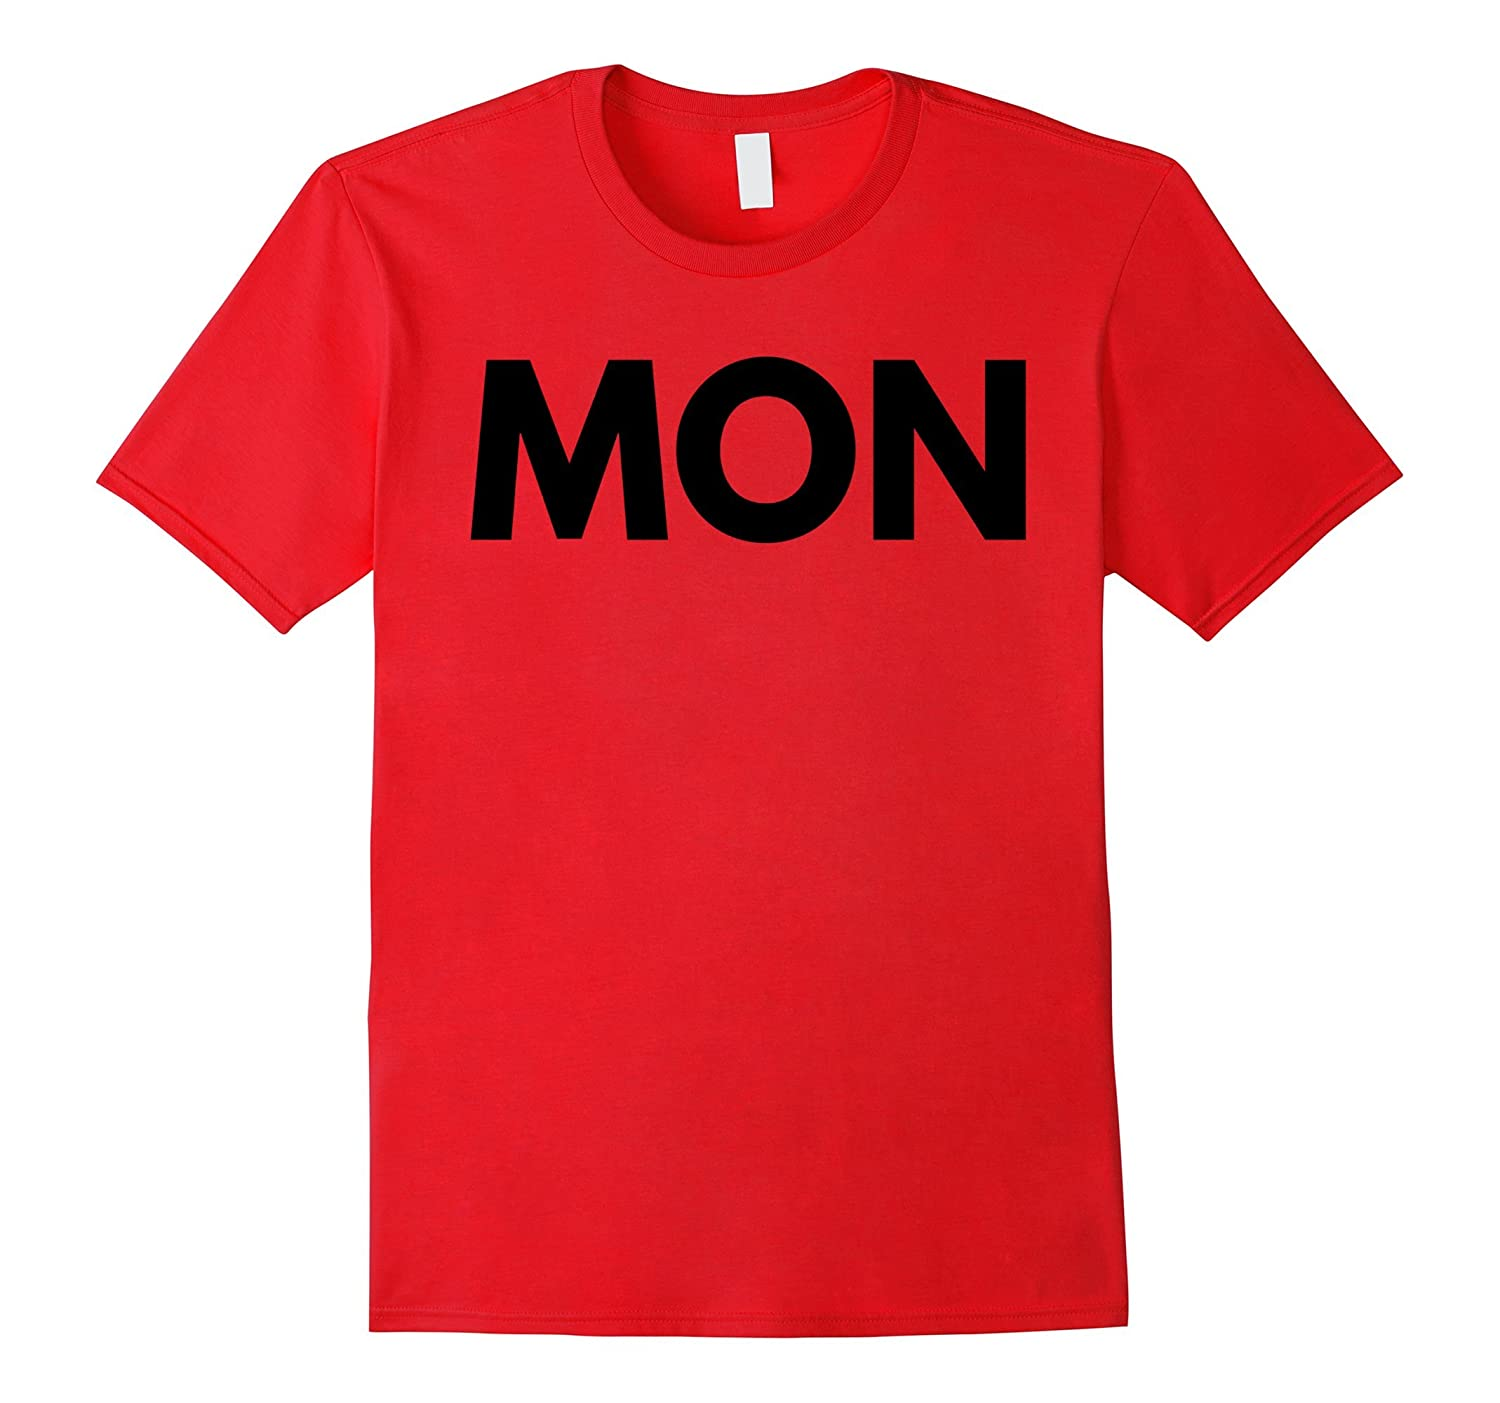 Monday T-Shirt Days of the Week T-Shirts, Costume, Etc-T-Shirt